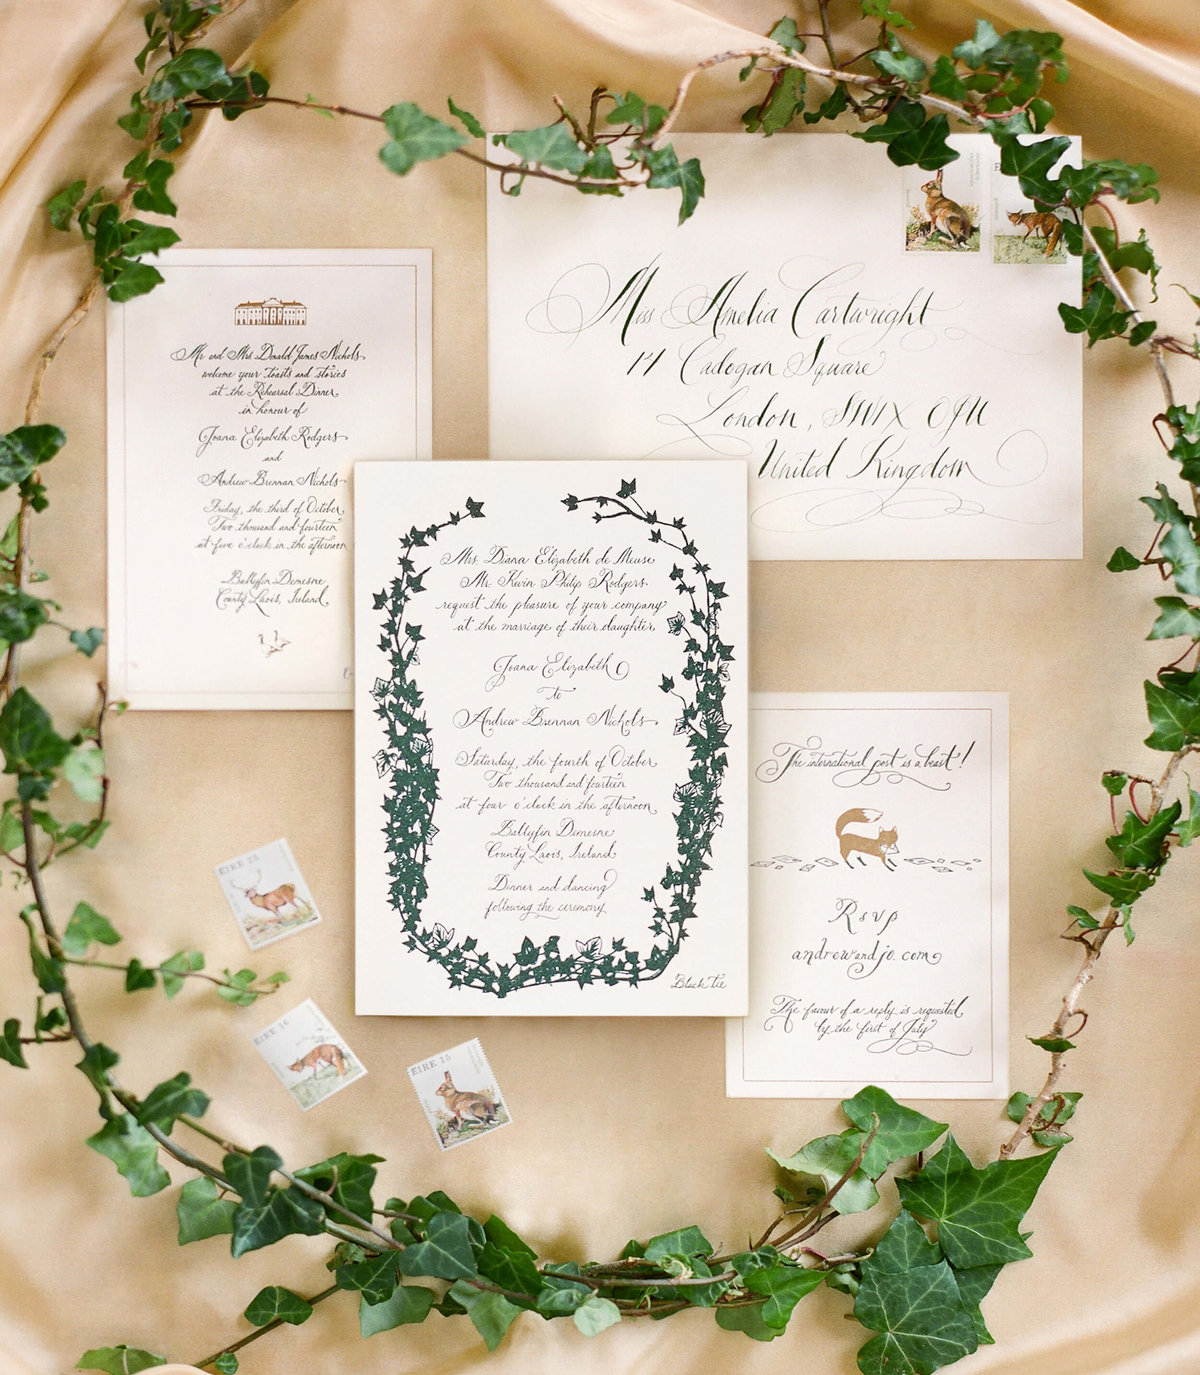 89-KTMerry-weddings-calligraphy-paper-suite-mr-boddington